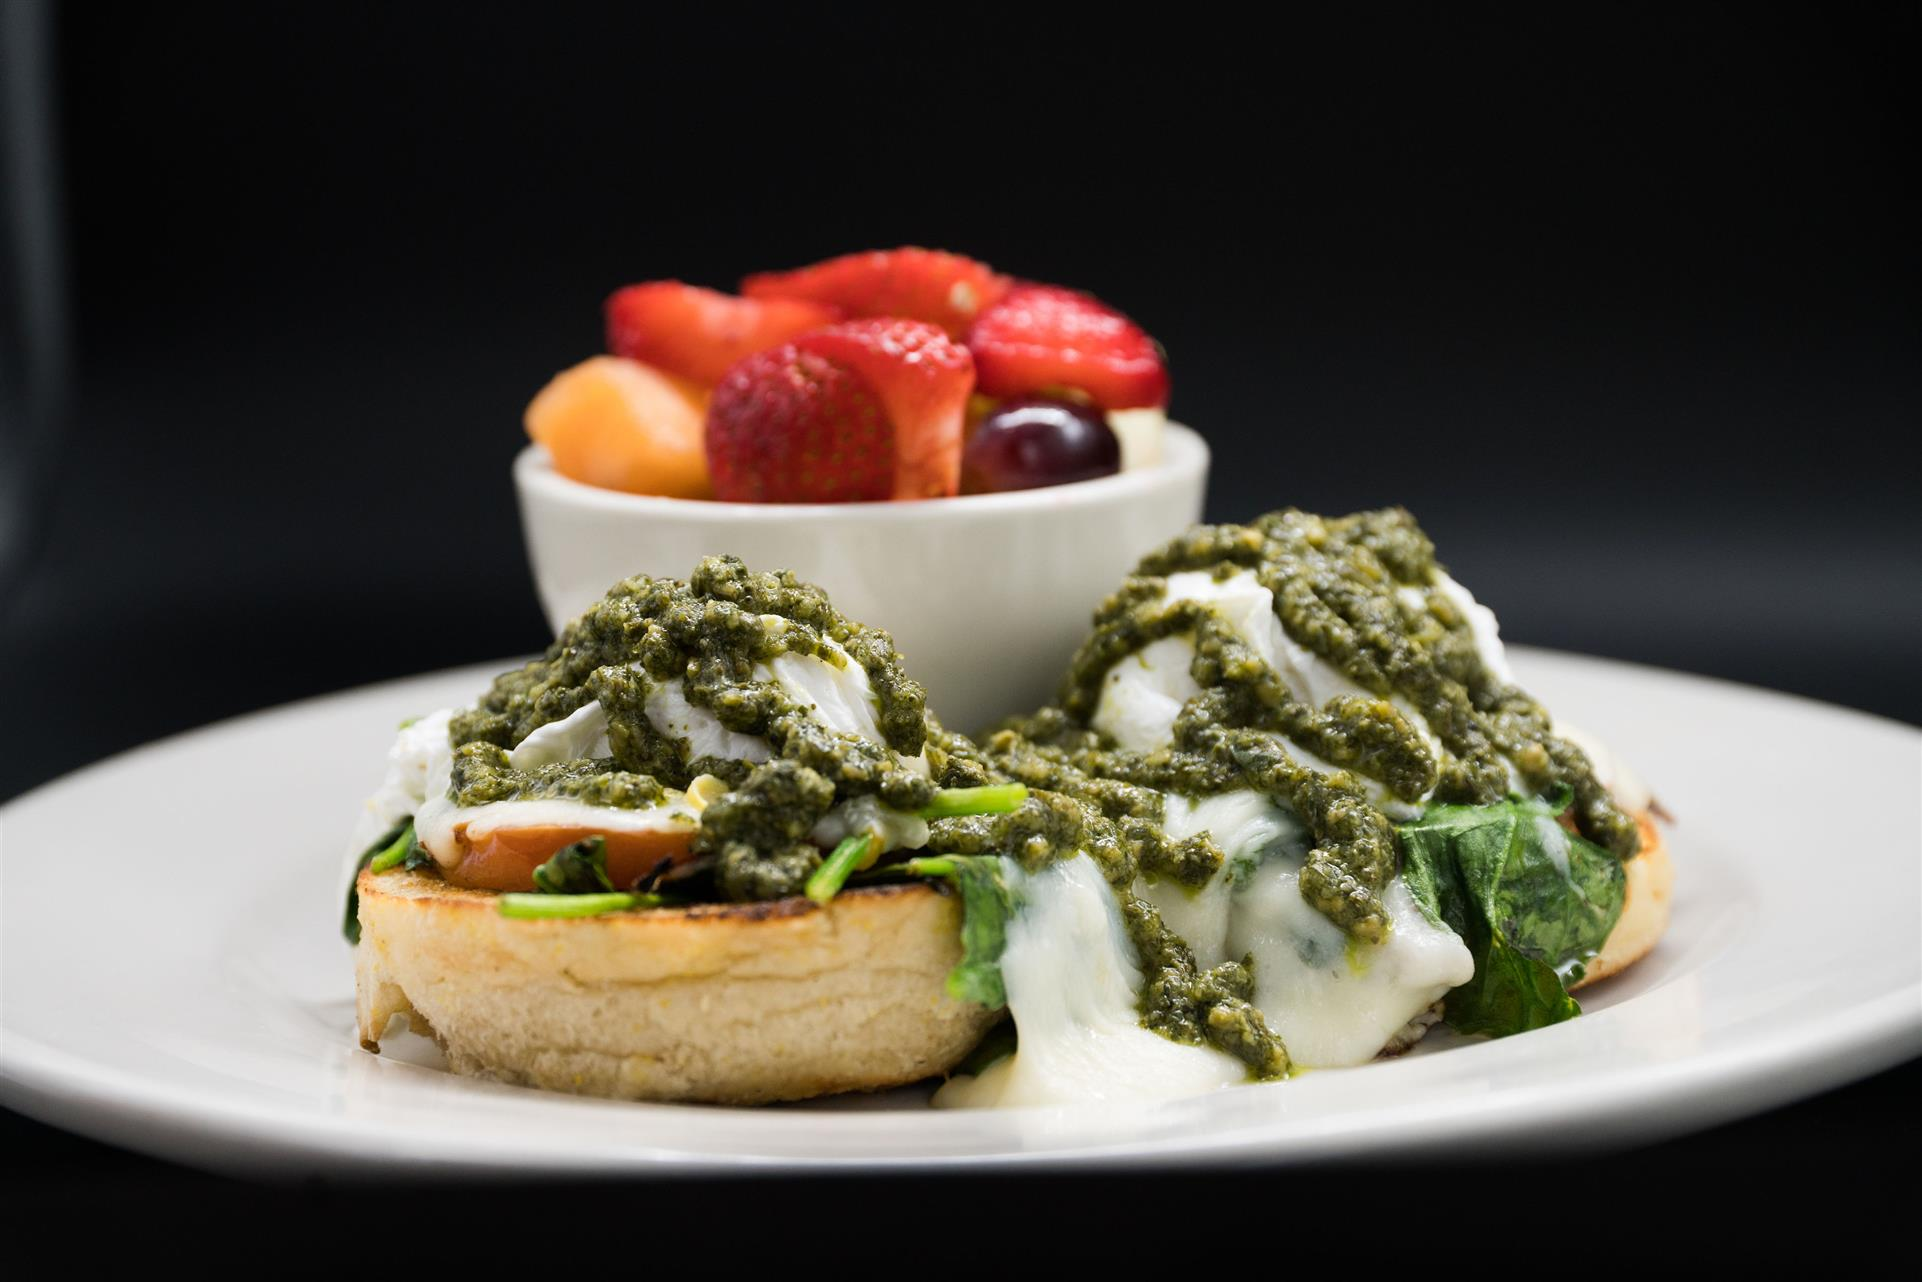 pesto benedict with fresh fruit